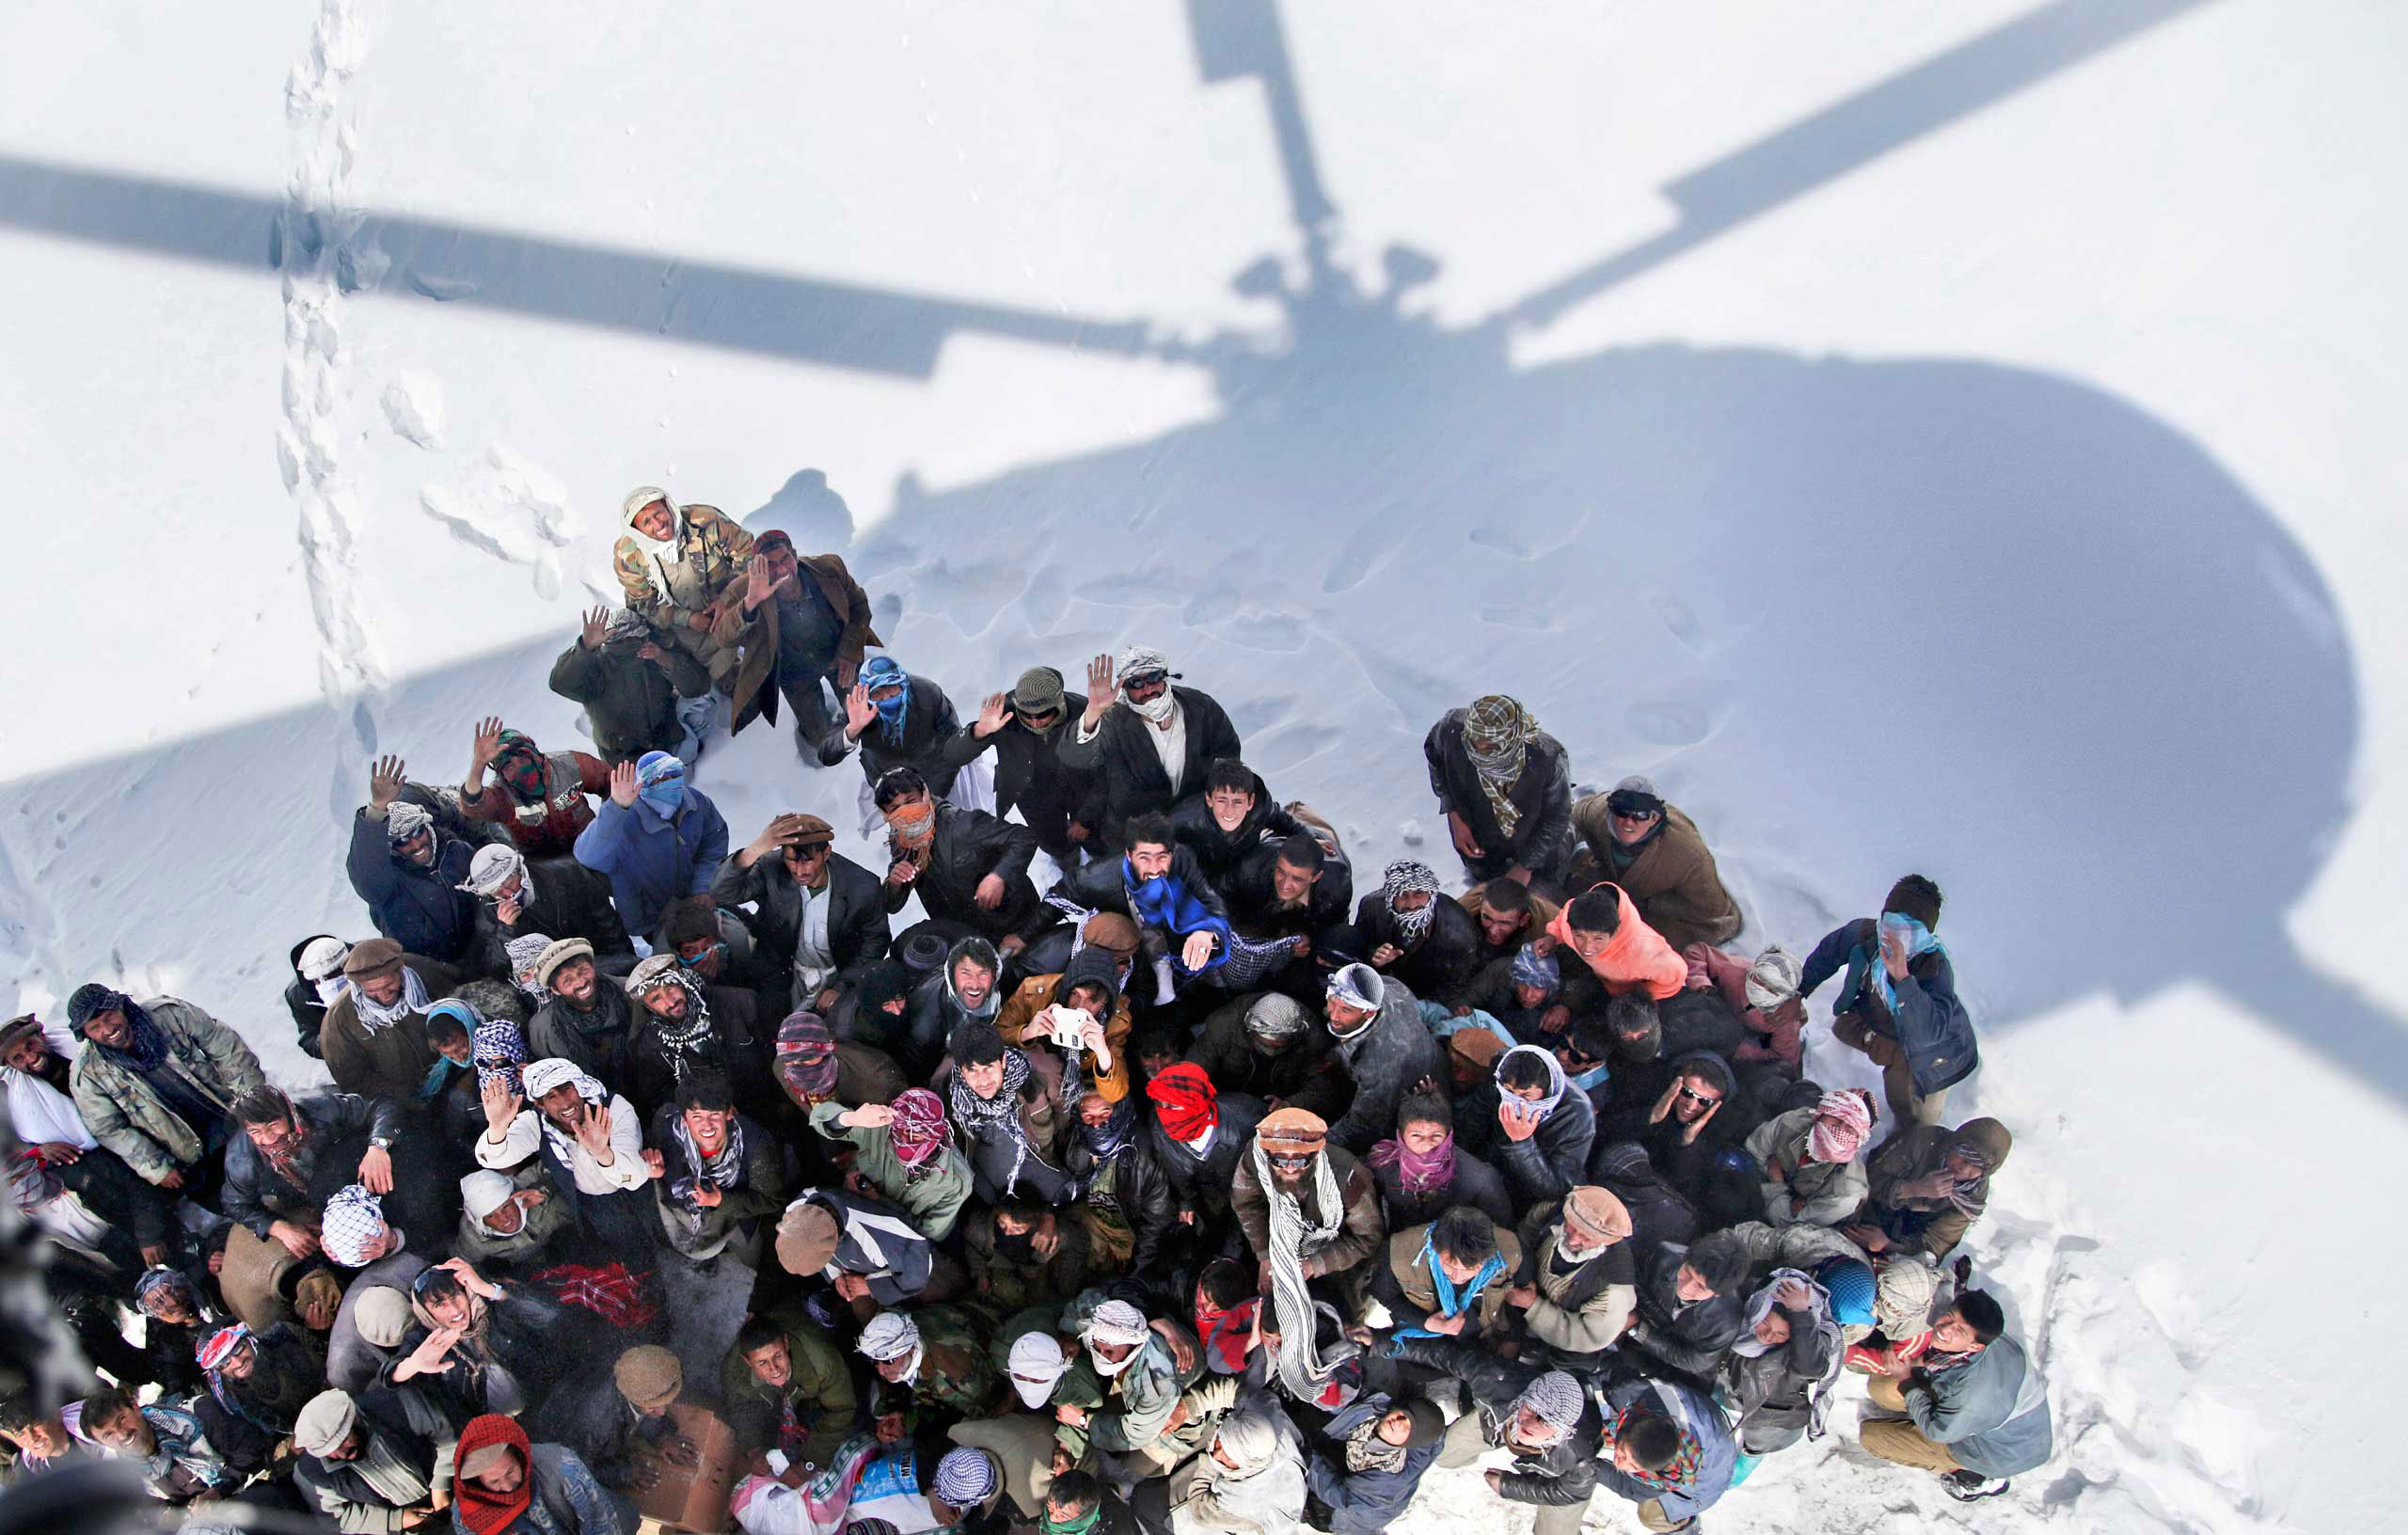 Survivors of an avalanche wait to receive relief goods distributed by an Army helicopter in the Paryan district of Panjshir province, Afghanistan. Feb. 28, 2015.